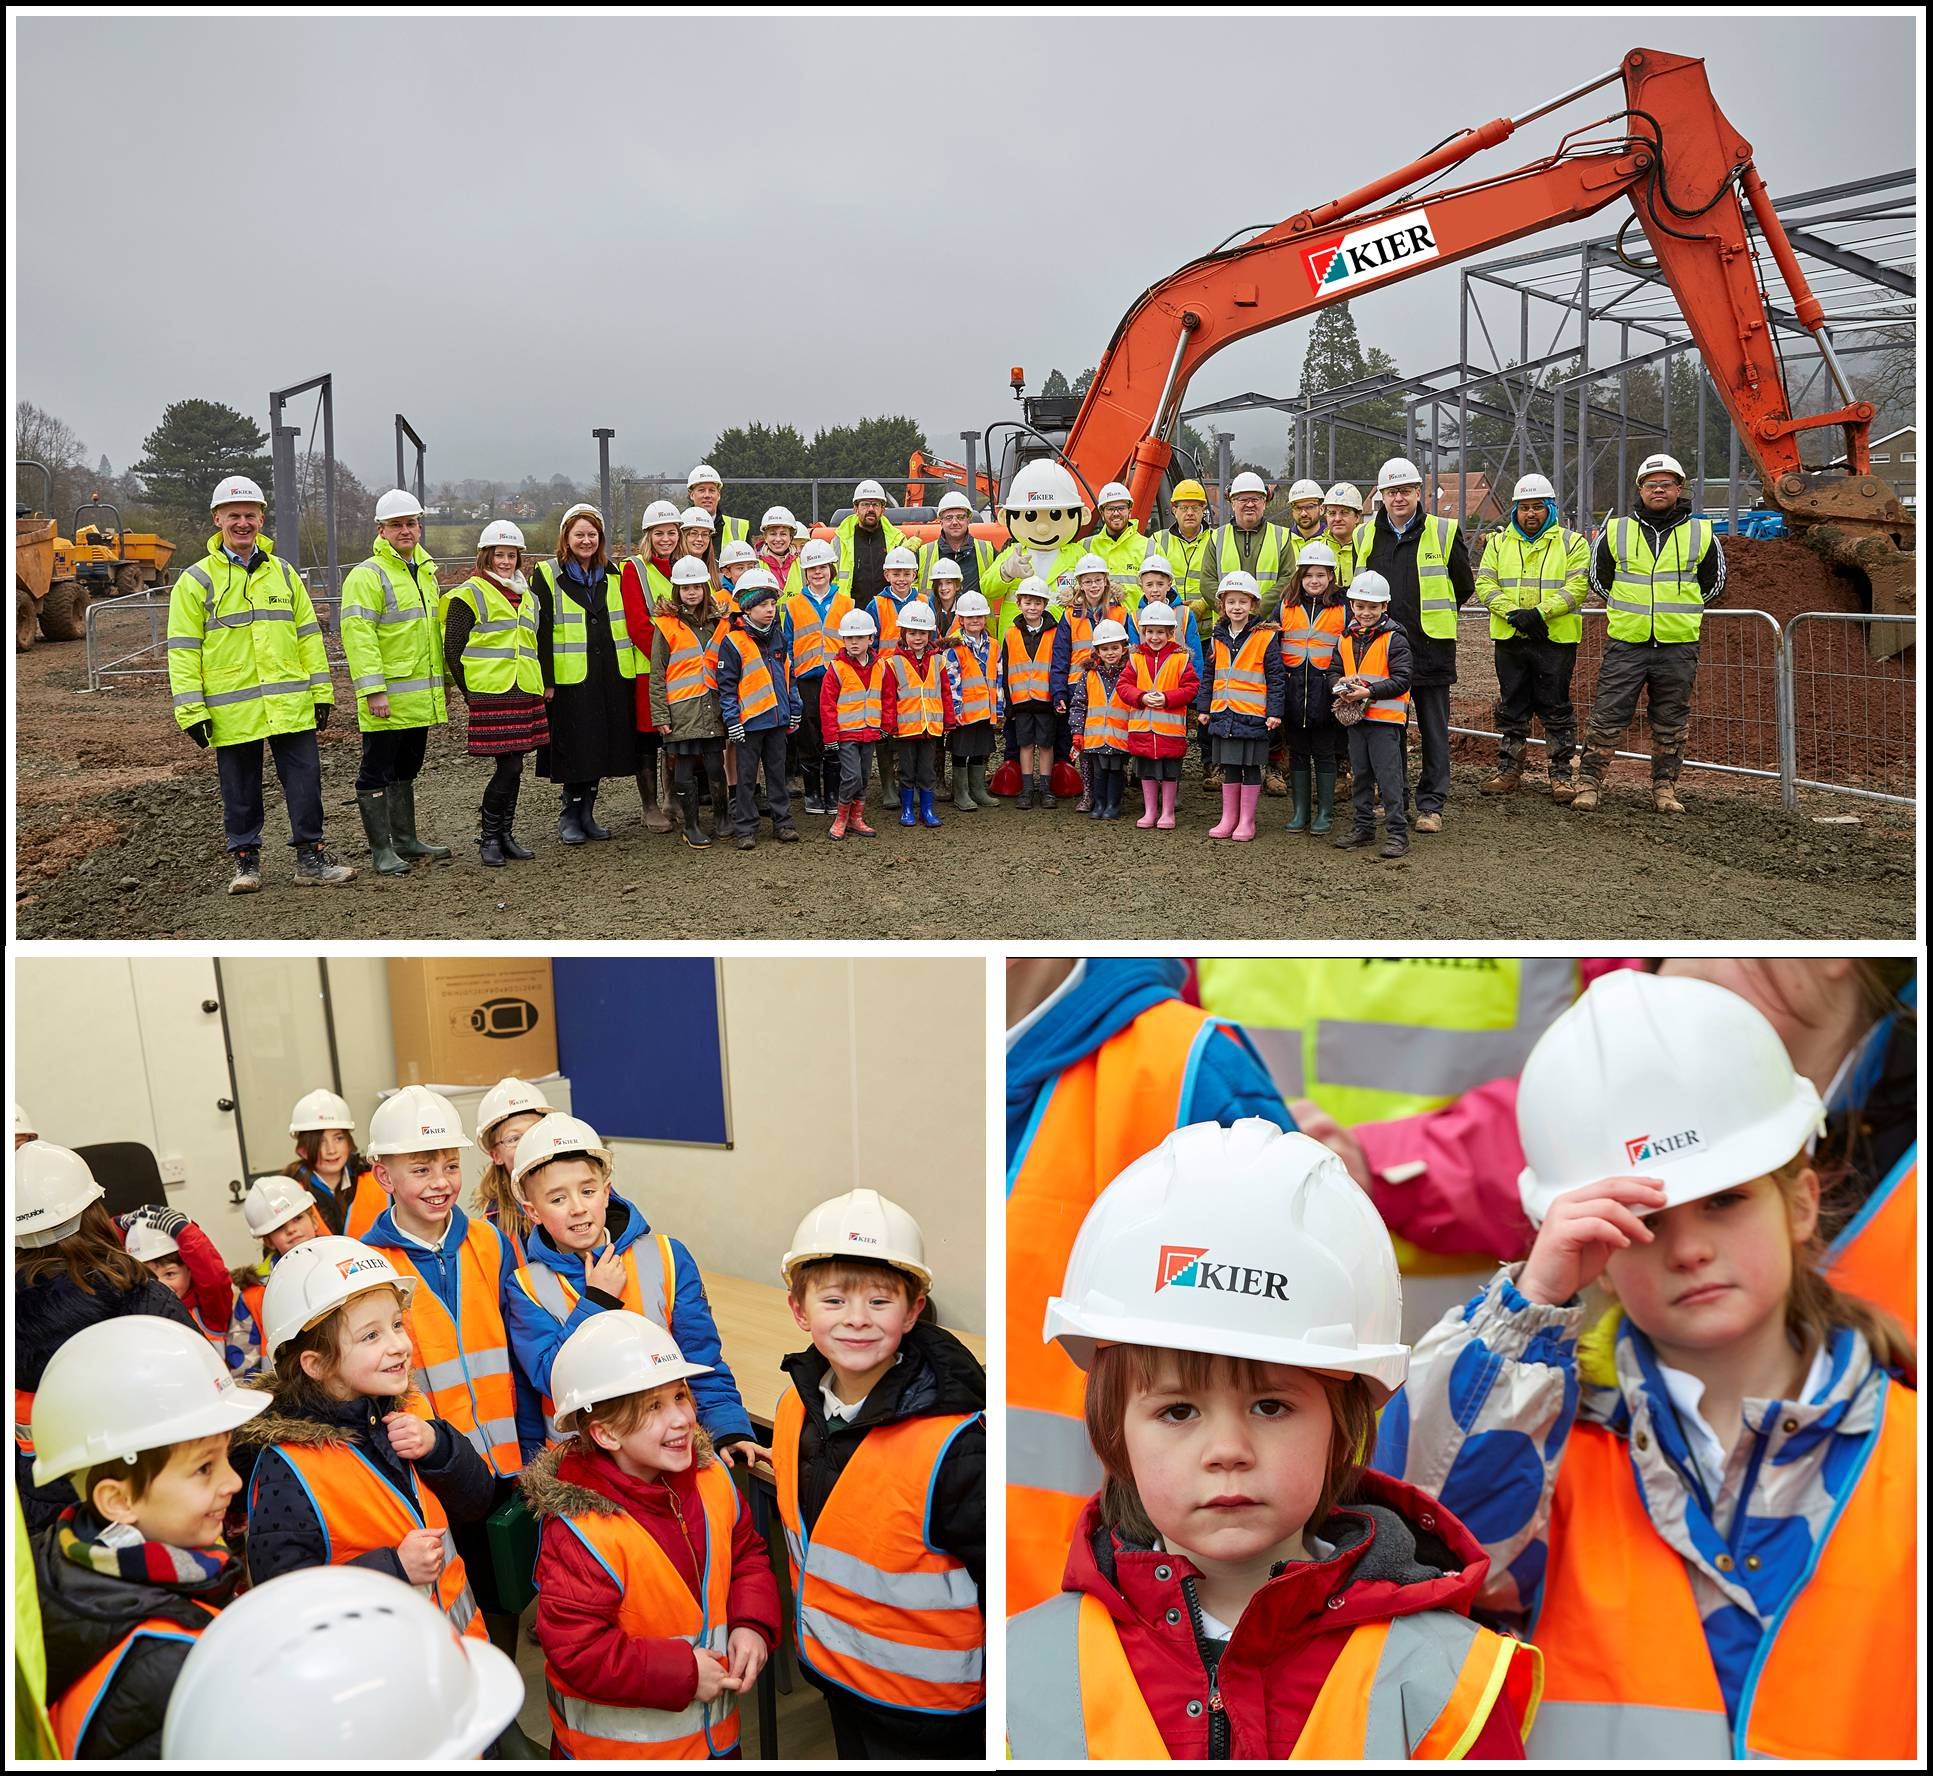 Colwall CE Primary School site visit (Photos courtesy of Kier Construction)